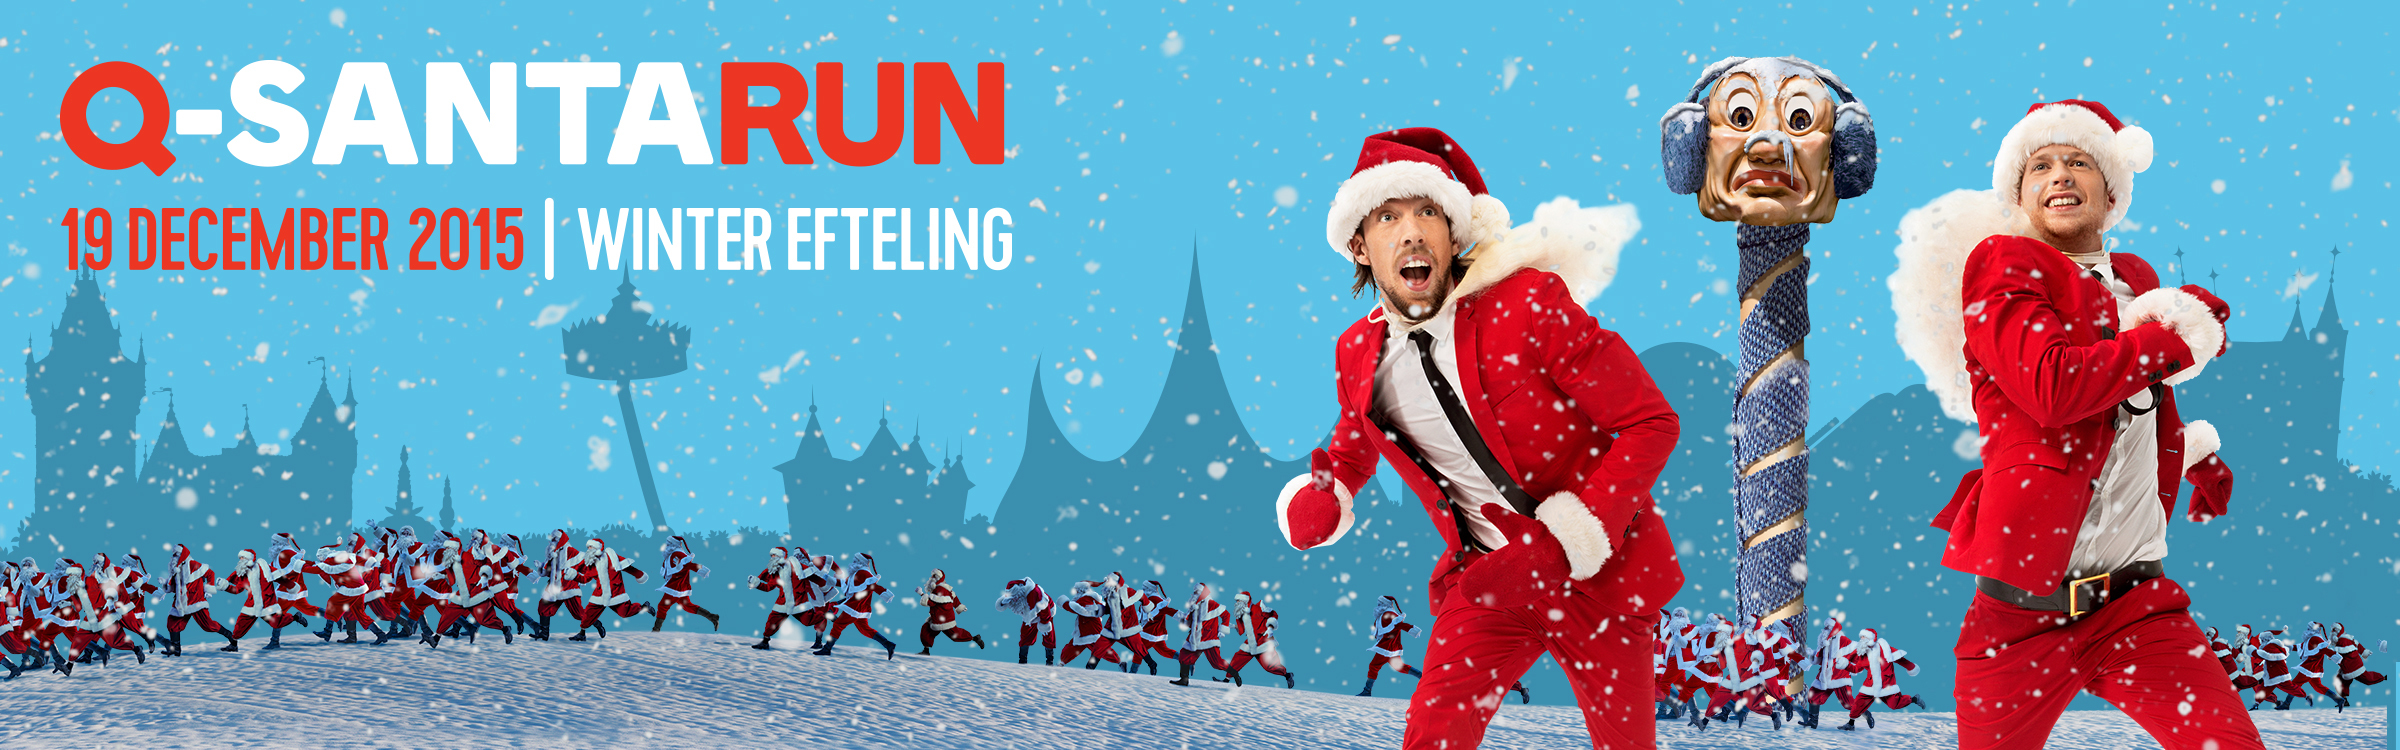 Qmusic actionheader q santarun